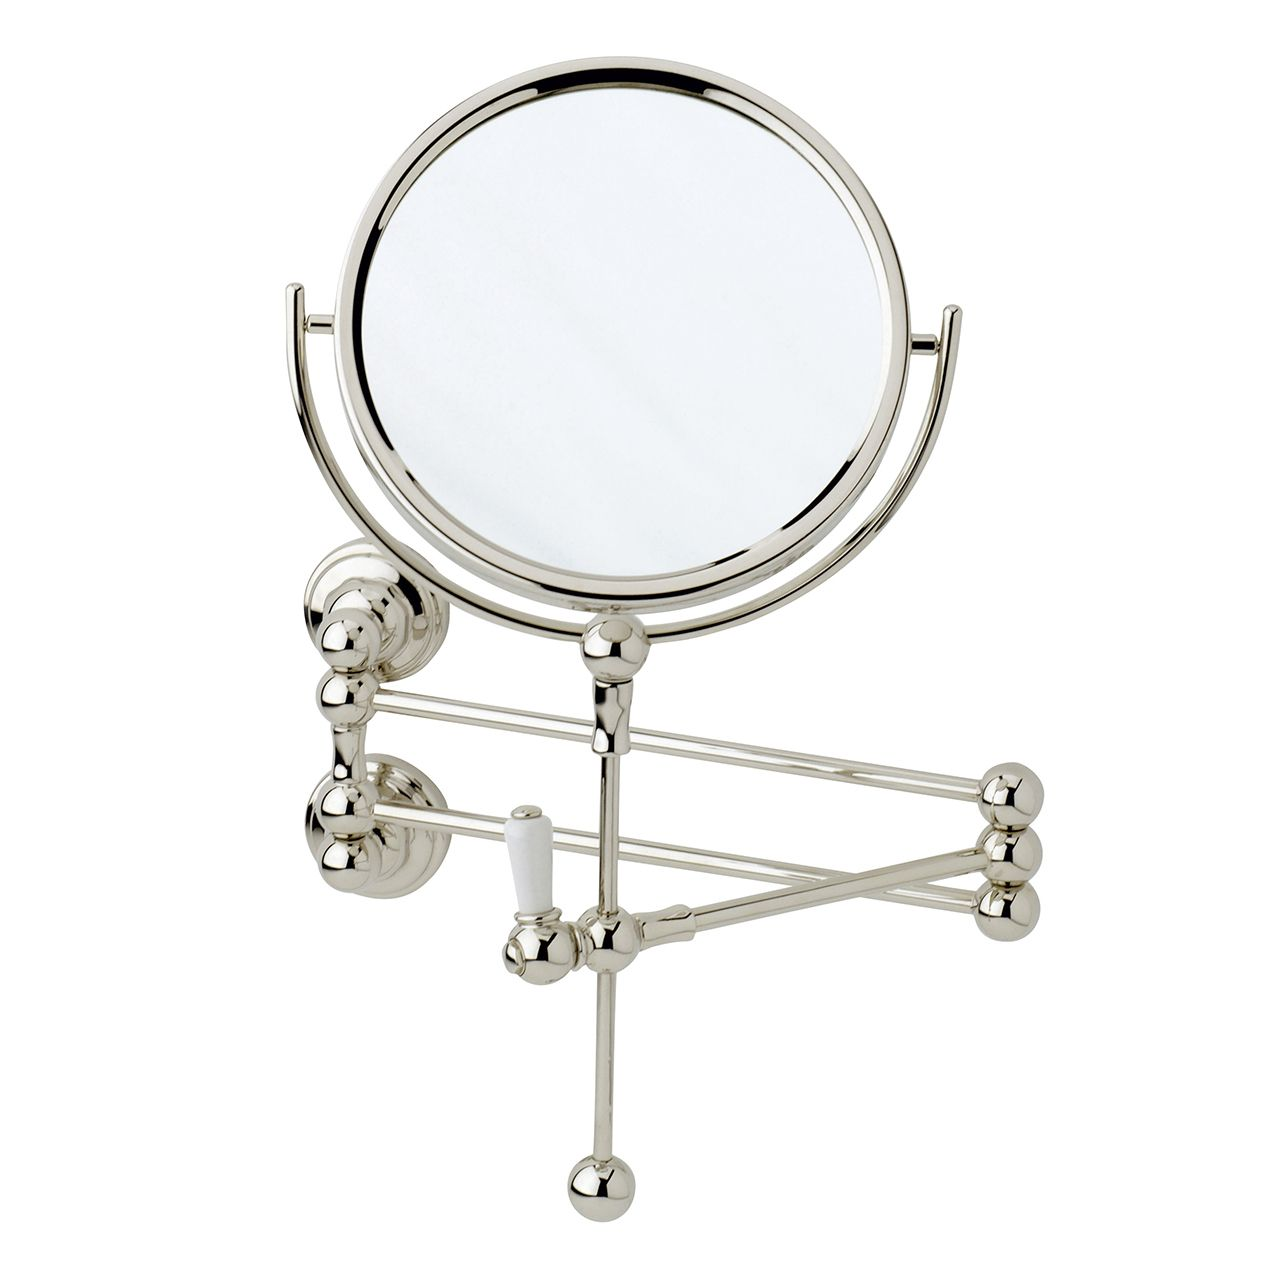 6918 perrin rowe wall mounted shaving mirror just perrin Traditional bathroom accessories chrome